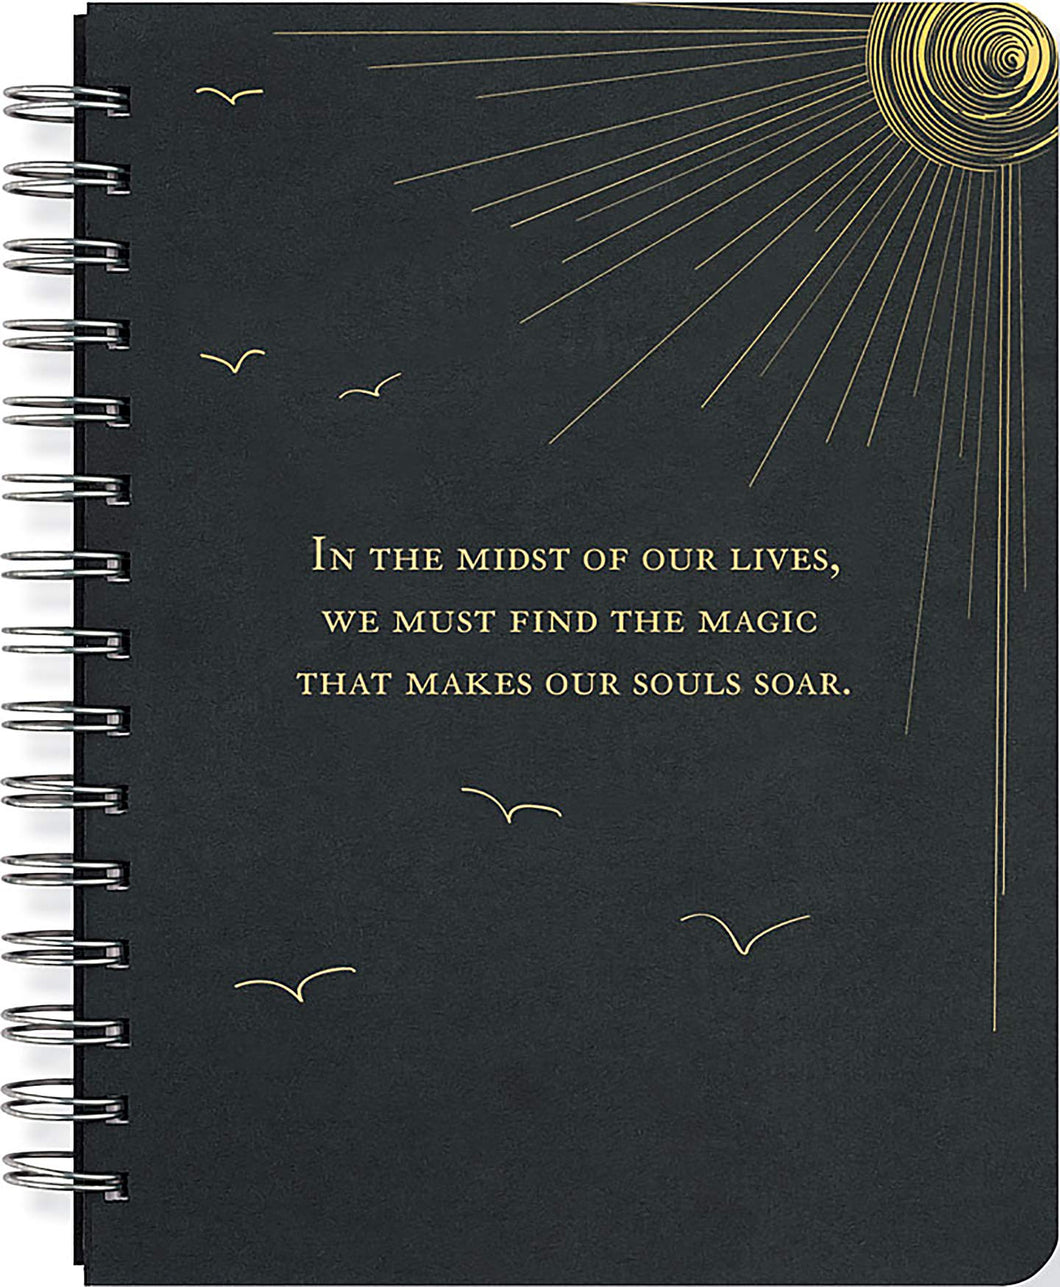 Soar Journal Notebook - MINDFUL ZEBRA